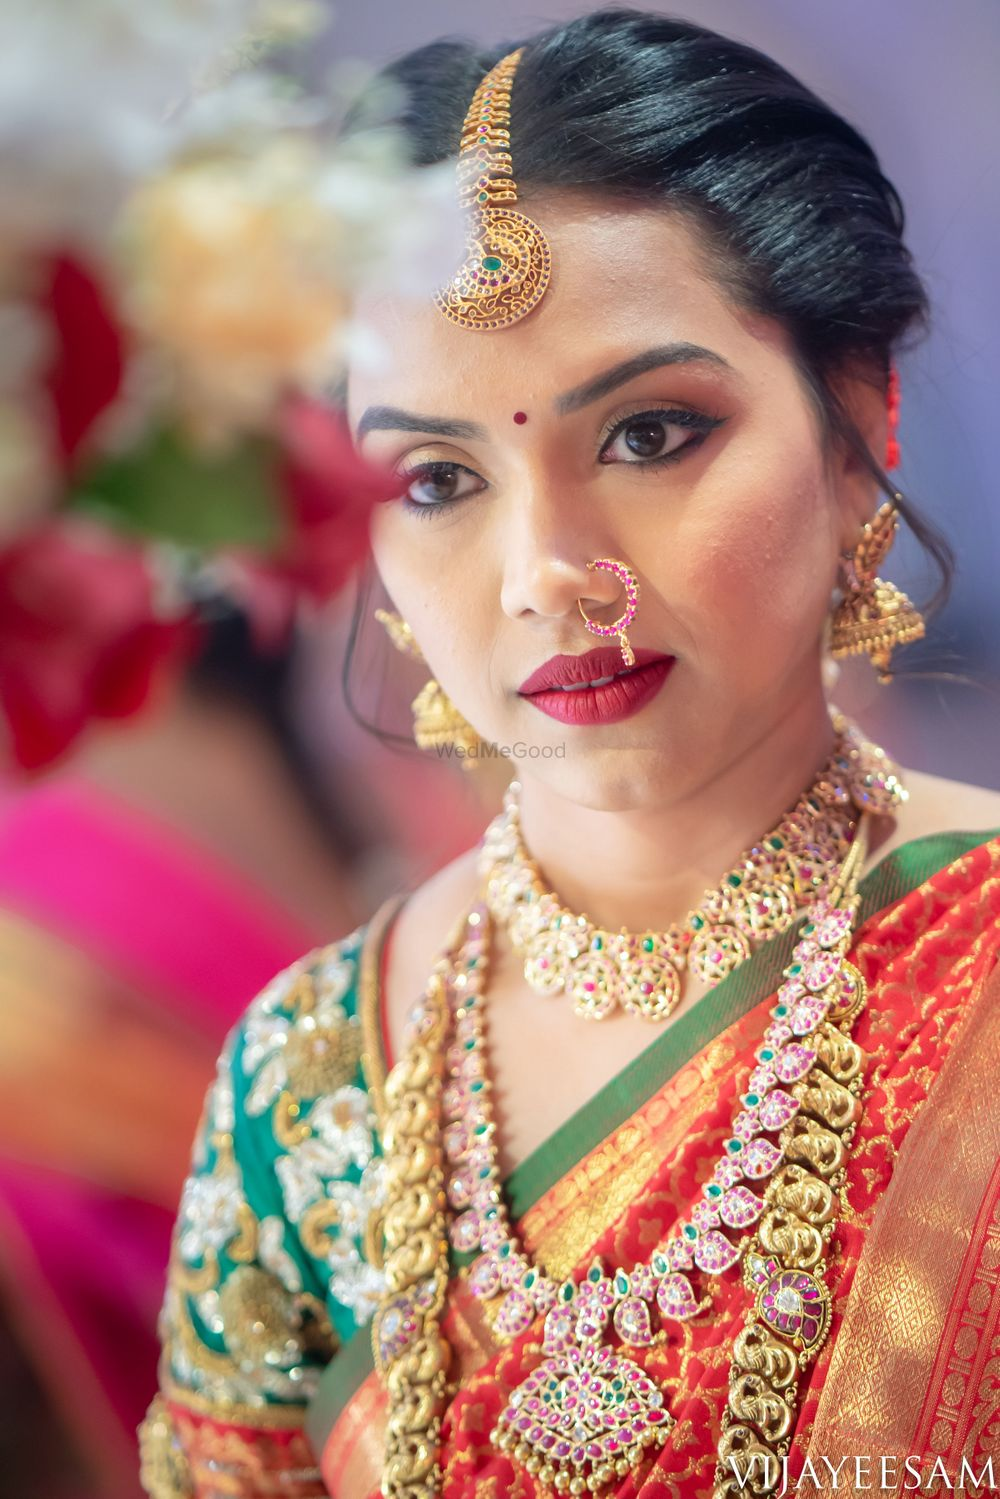 Photo of Layered south indian bridal jewellery with orange and green saree